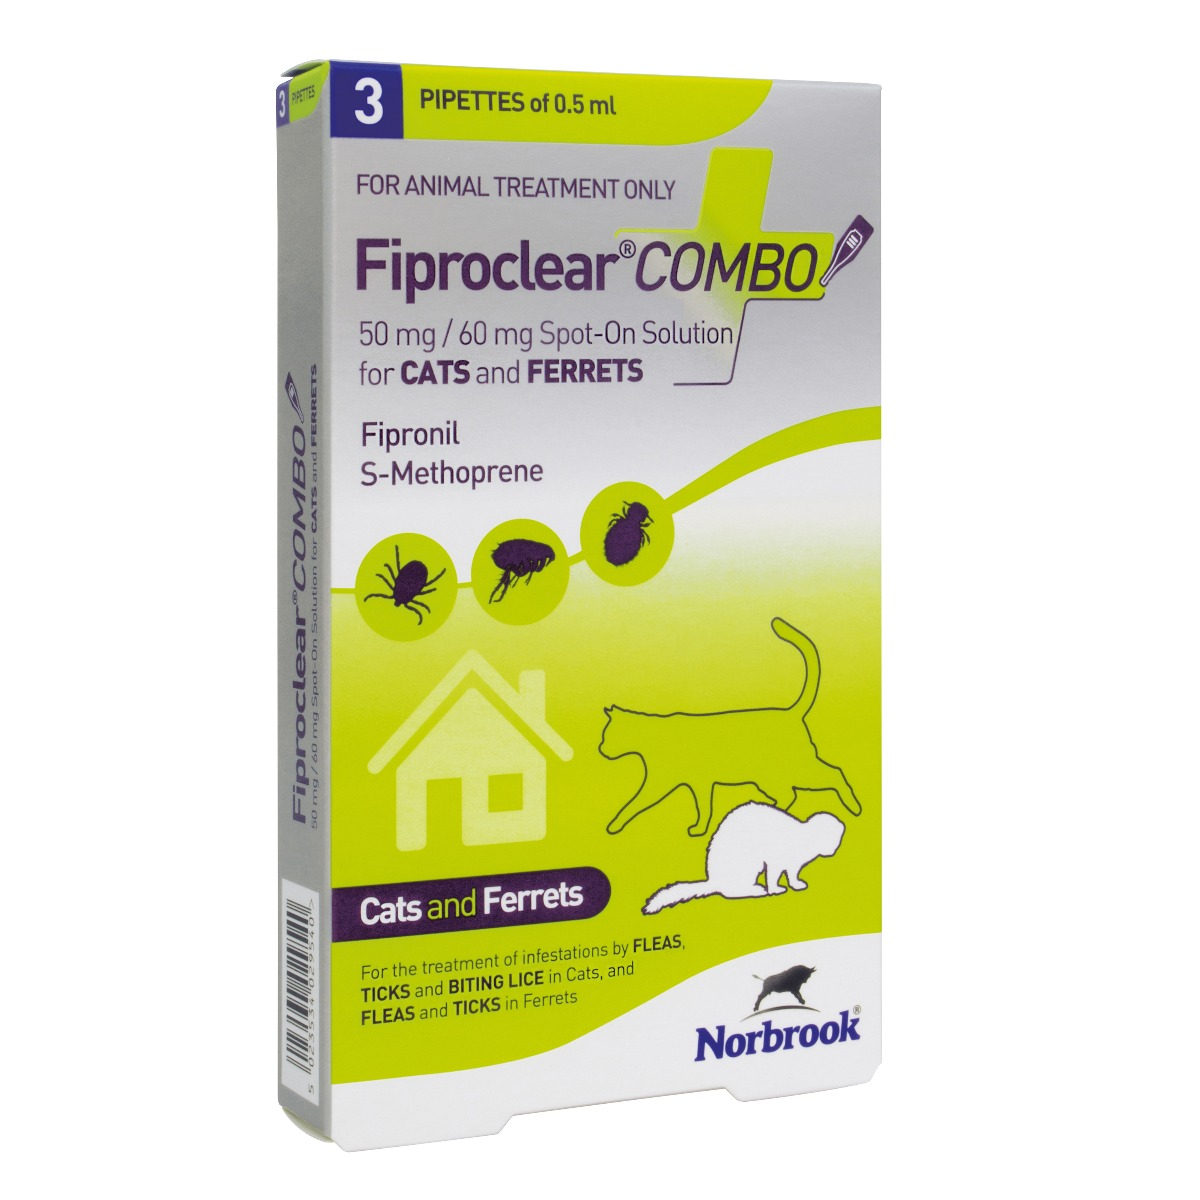 Fiproclear Combo Spot On Solution for Cats & Ferrets- Pack of 3 on Animed Direct